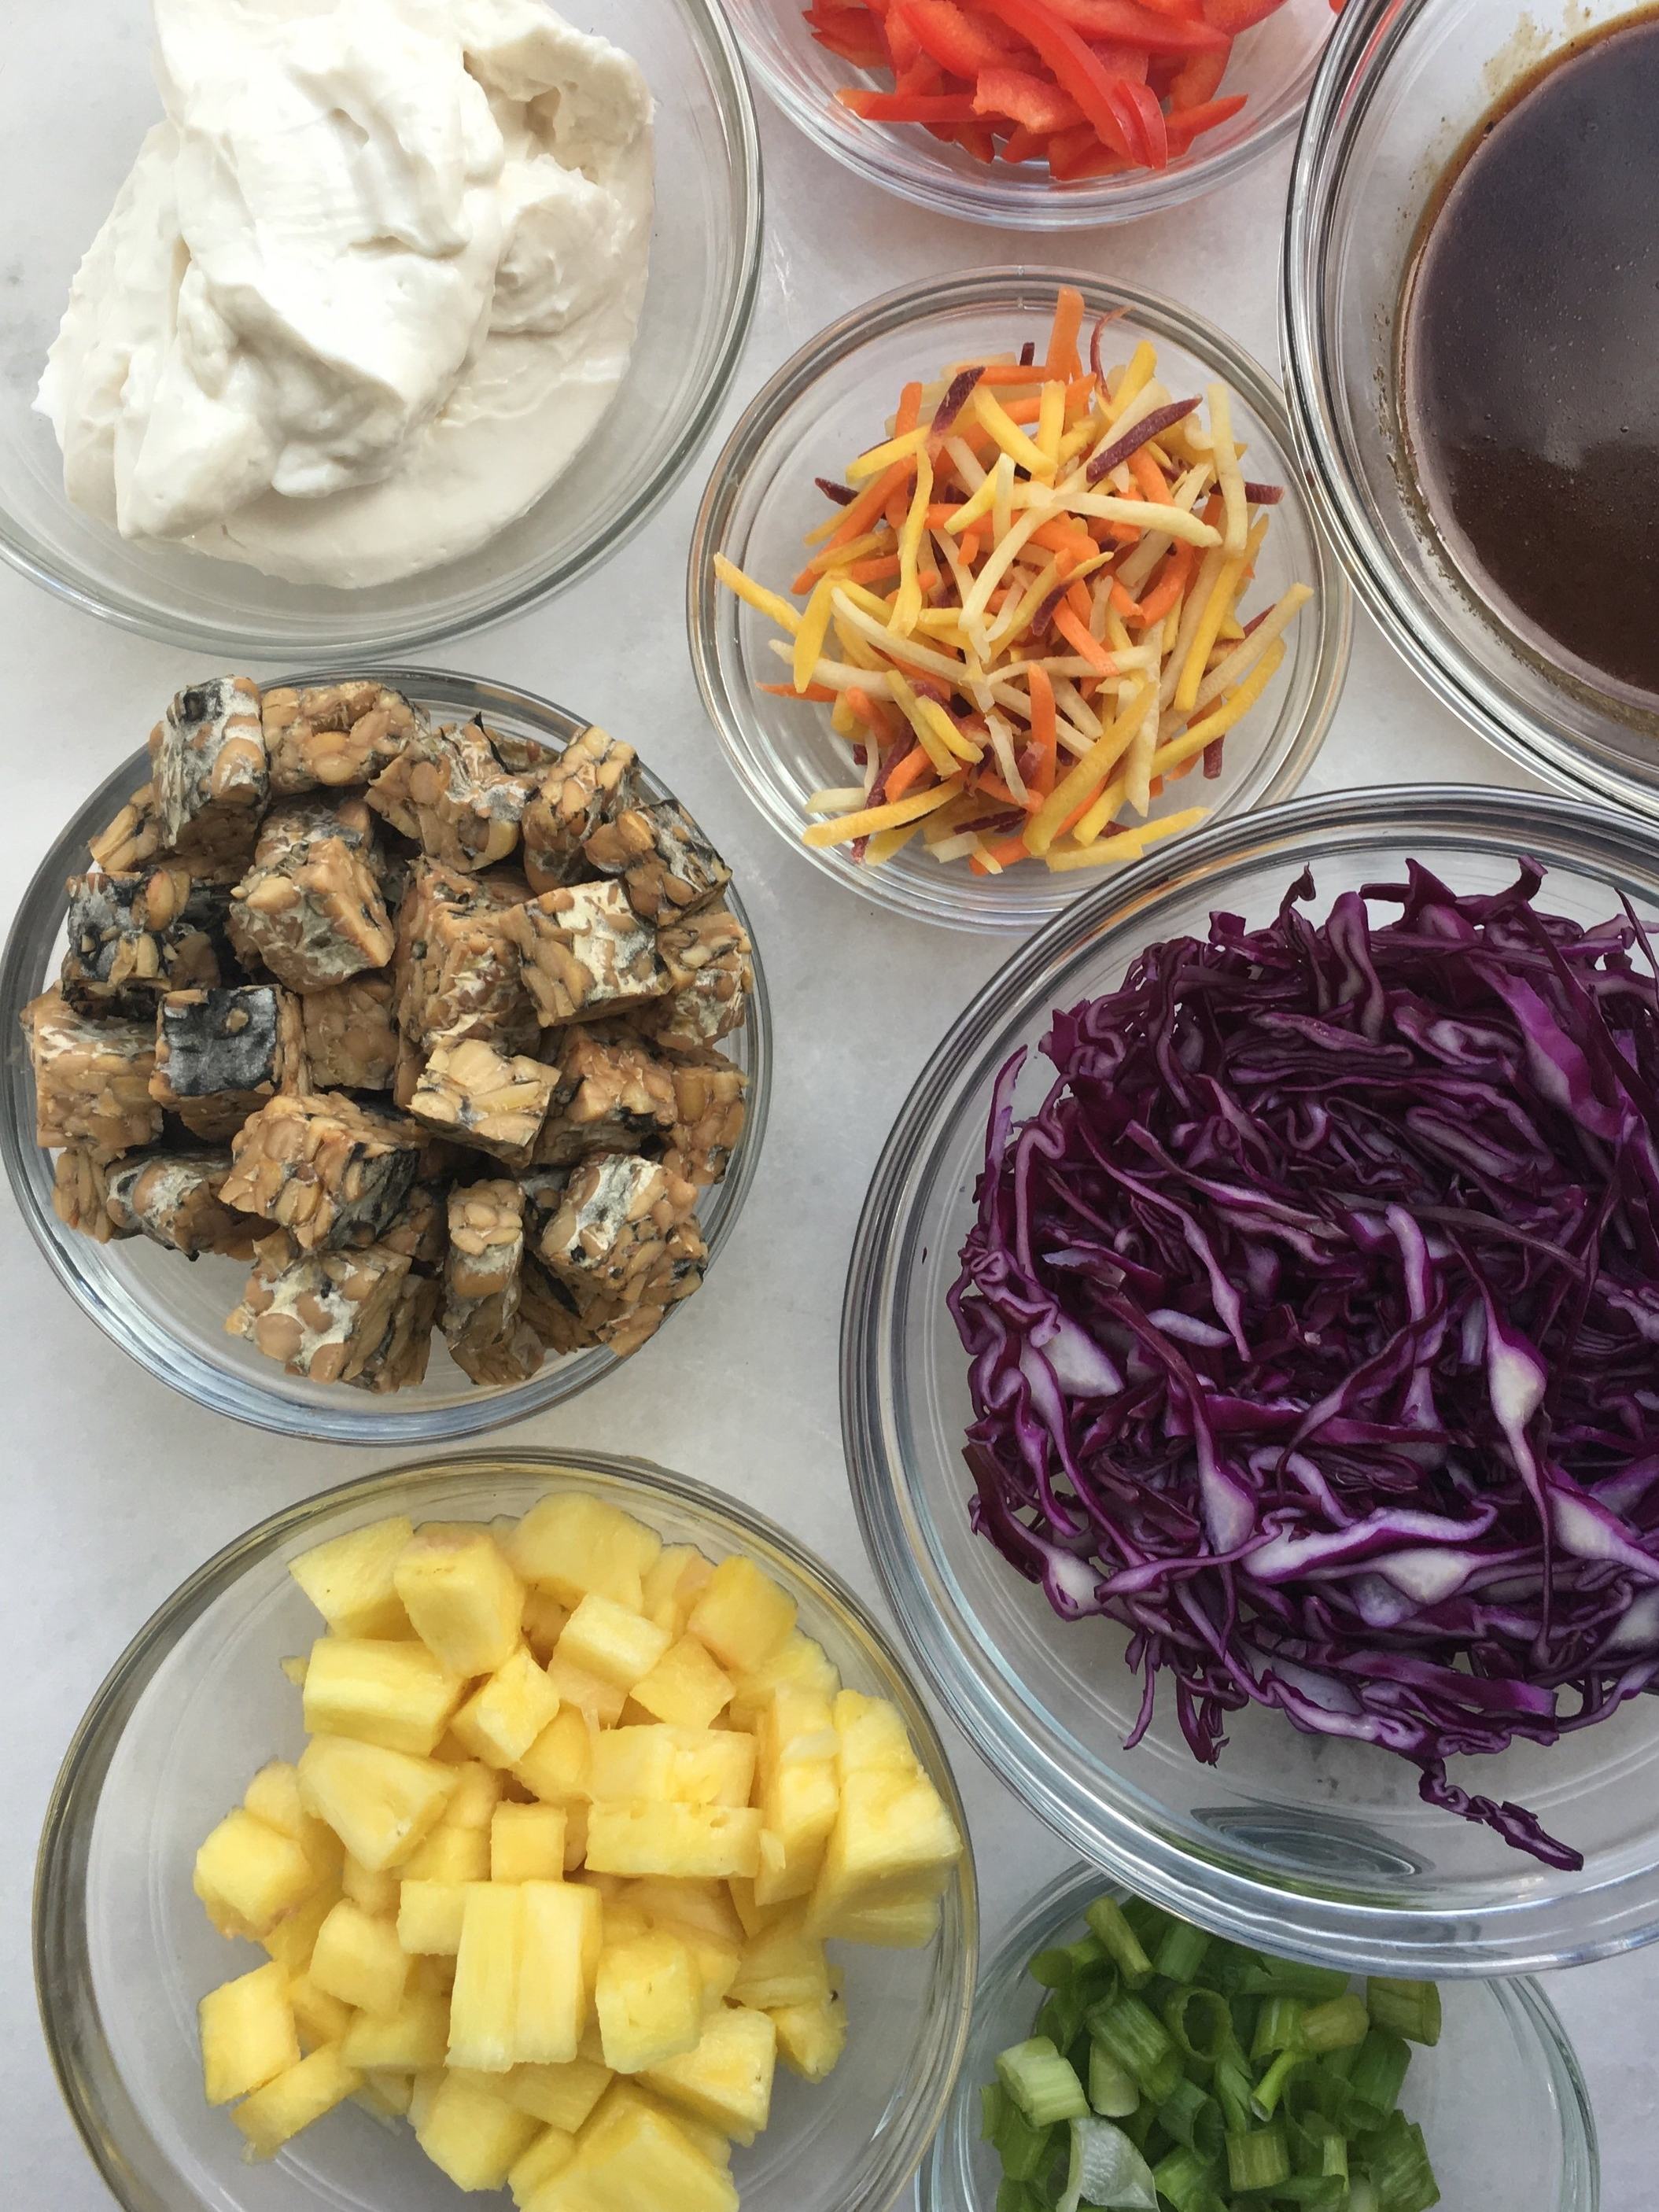 Recipe from the Native Sun Kitchen